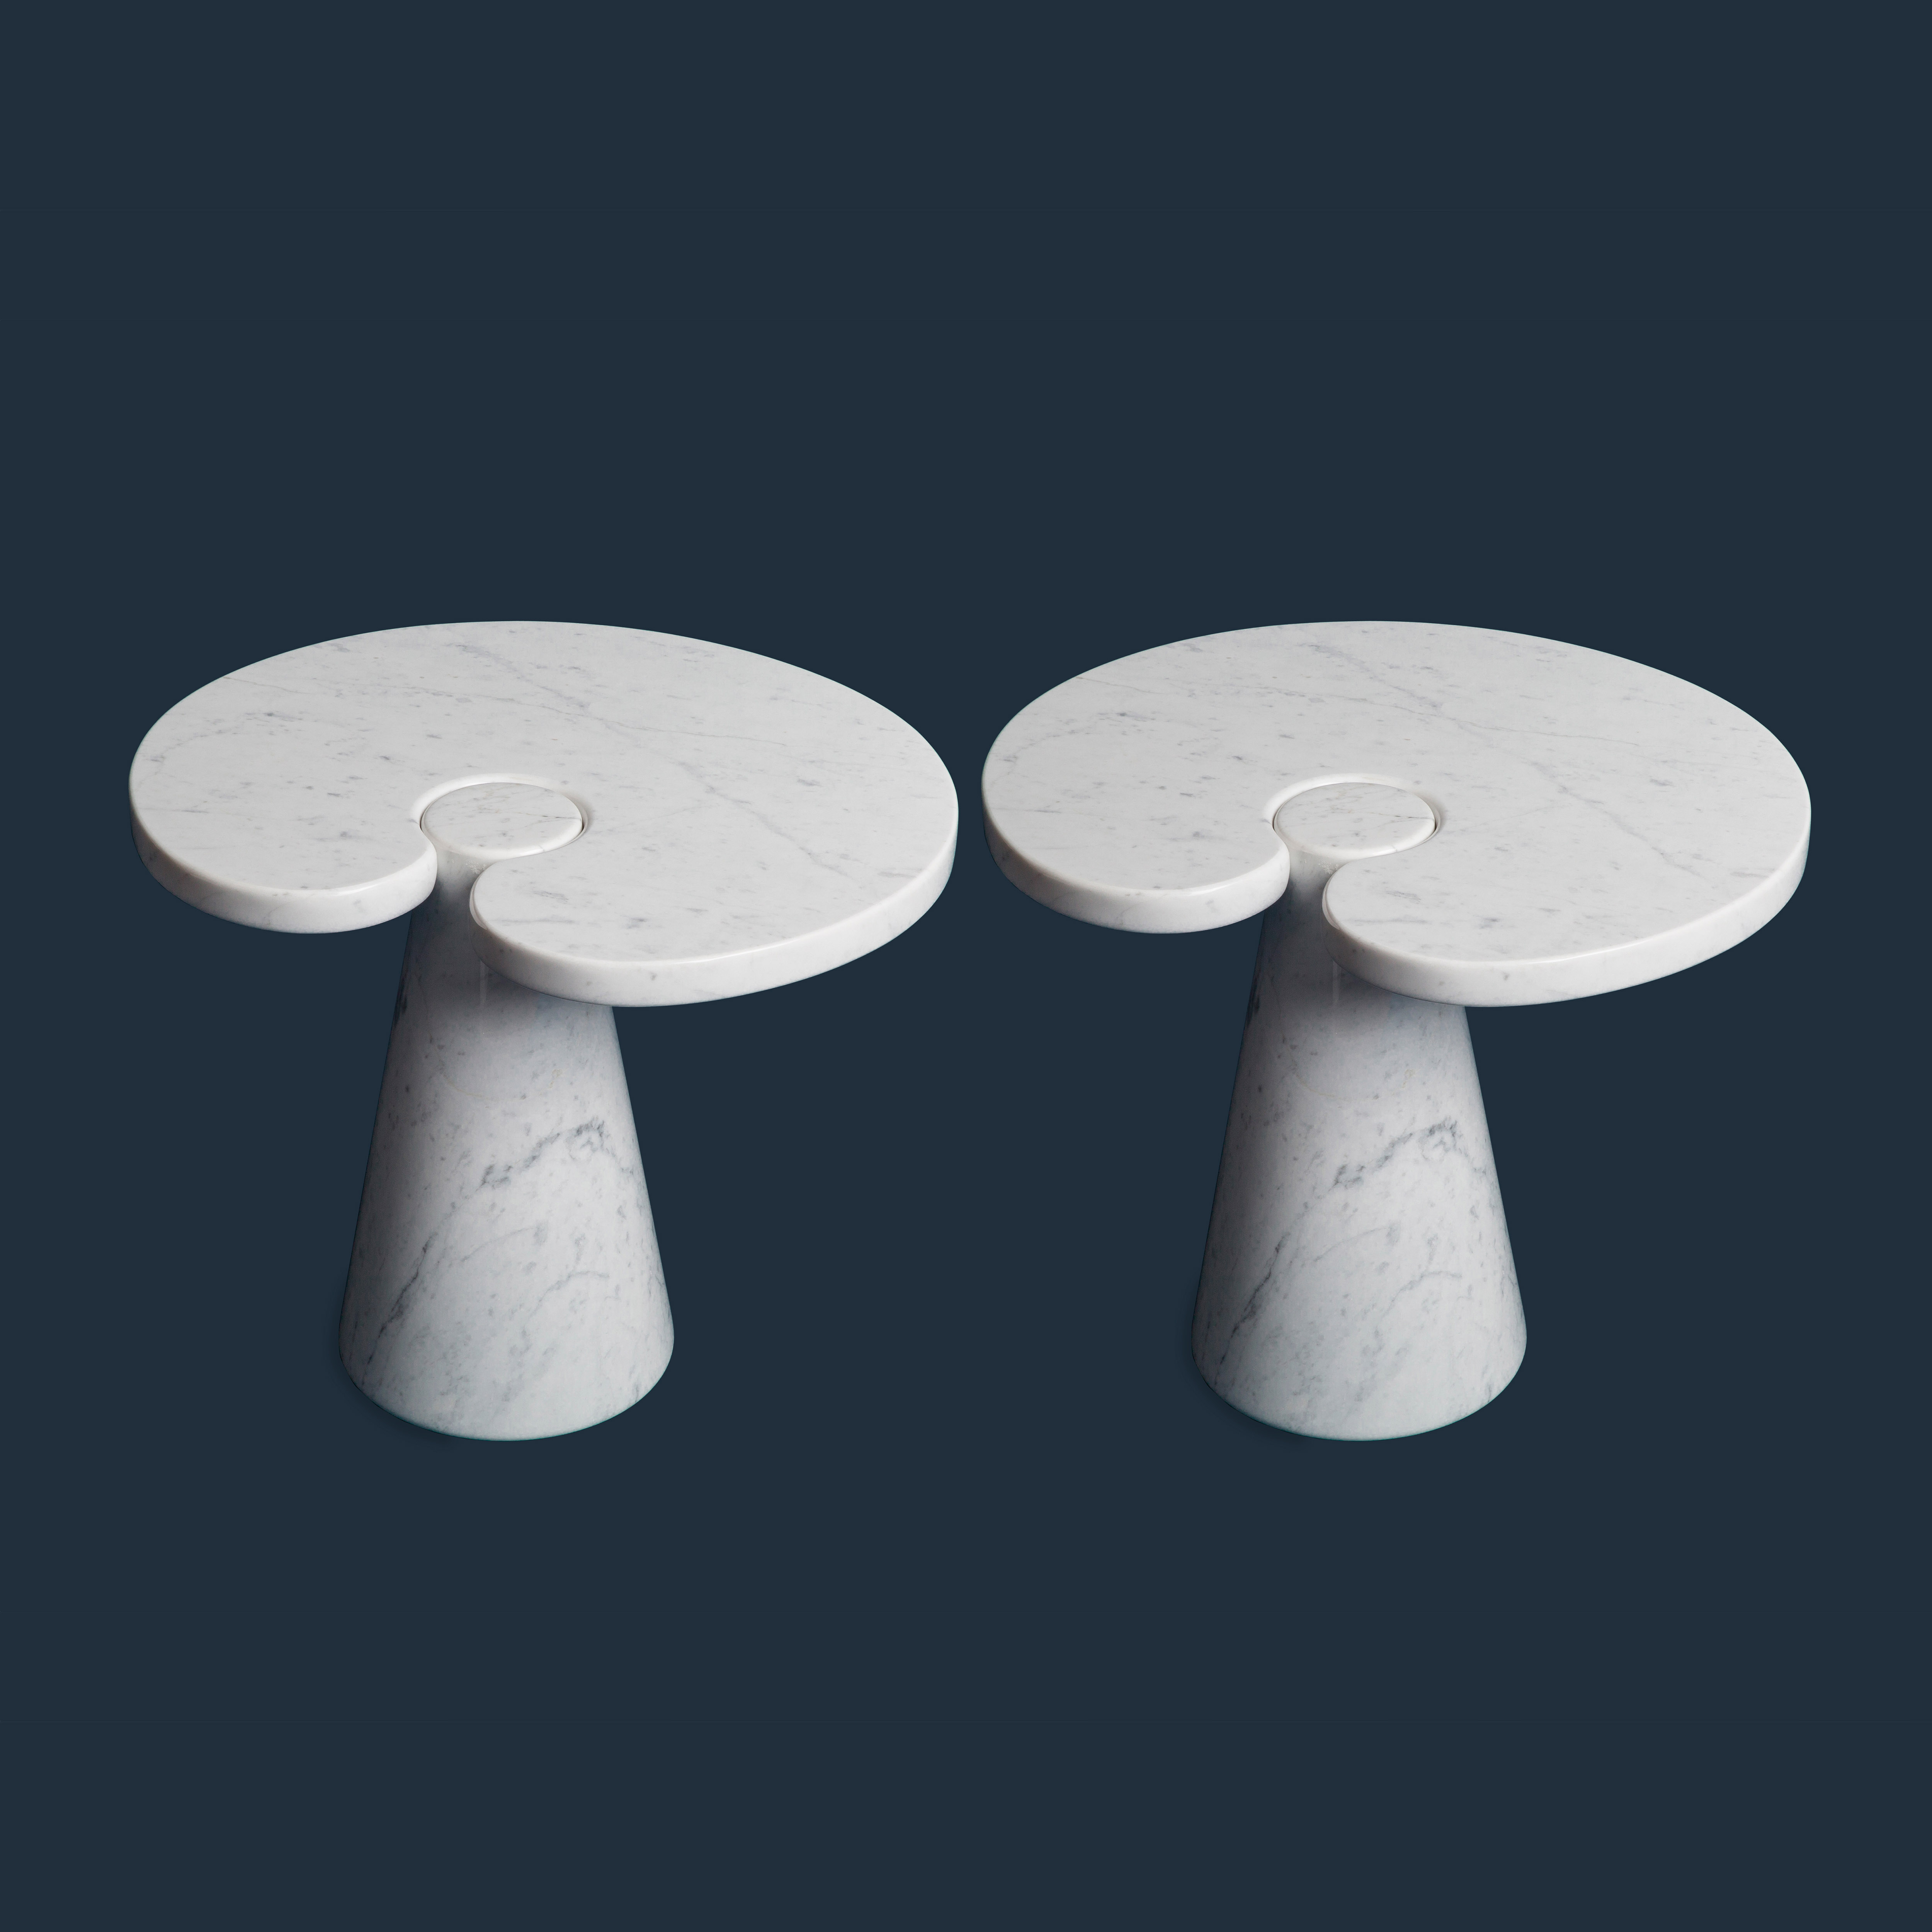 Pair of Side Tables from 'Eros' series, model P90 by Angelo Mangiarotti for Skipper   soyun k.